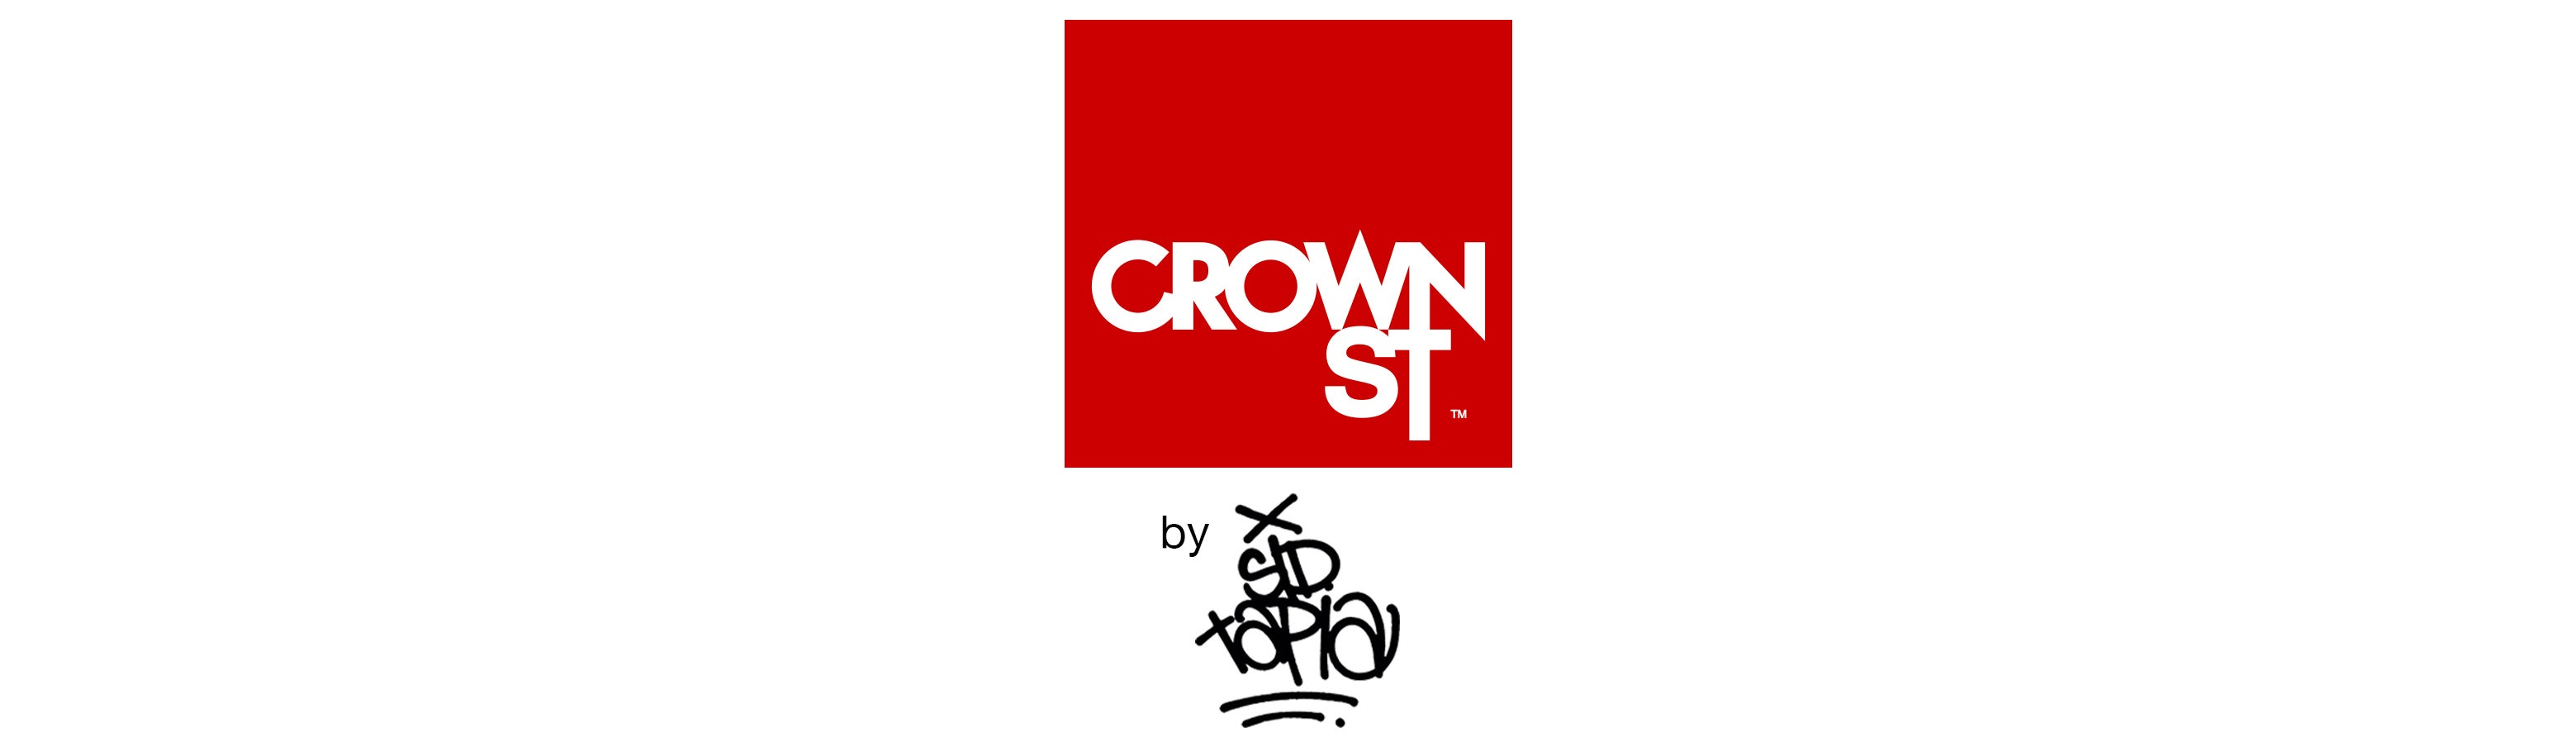 Crown St